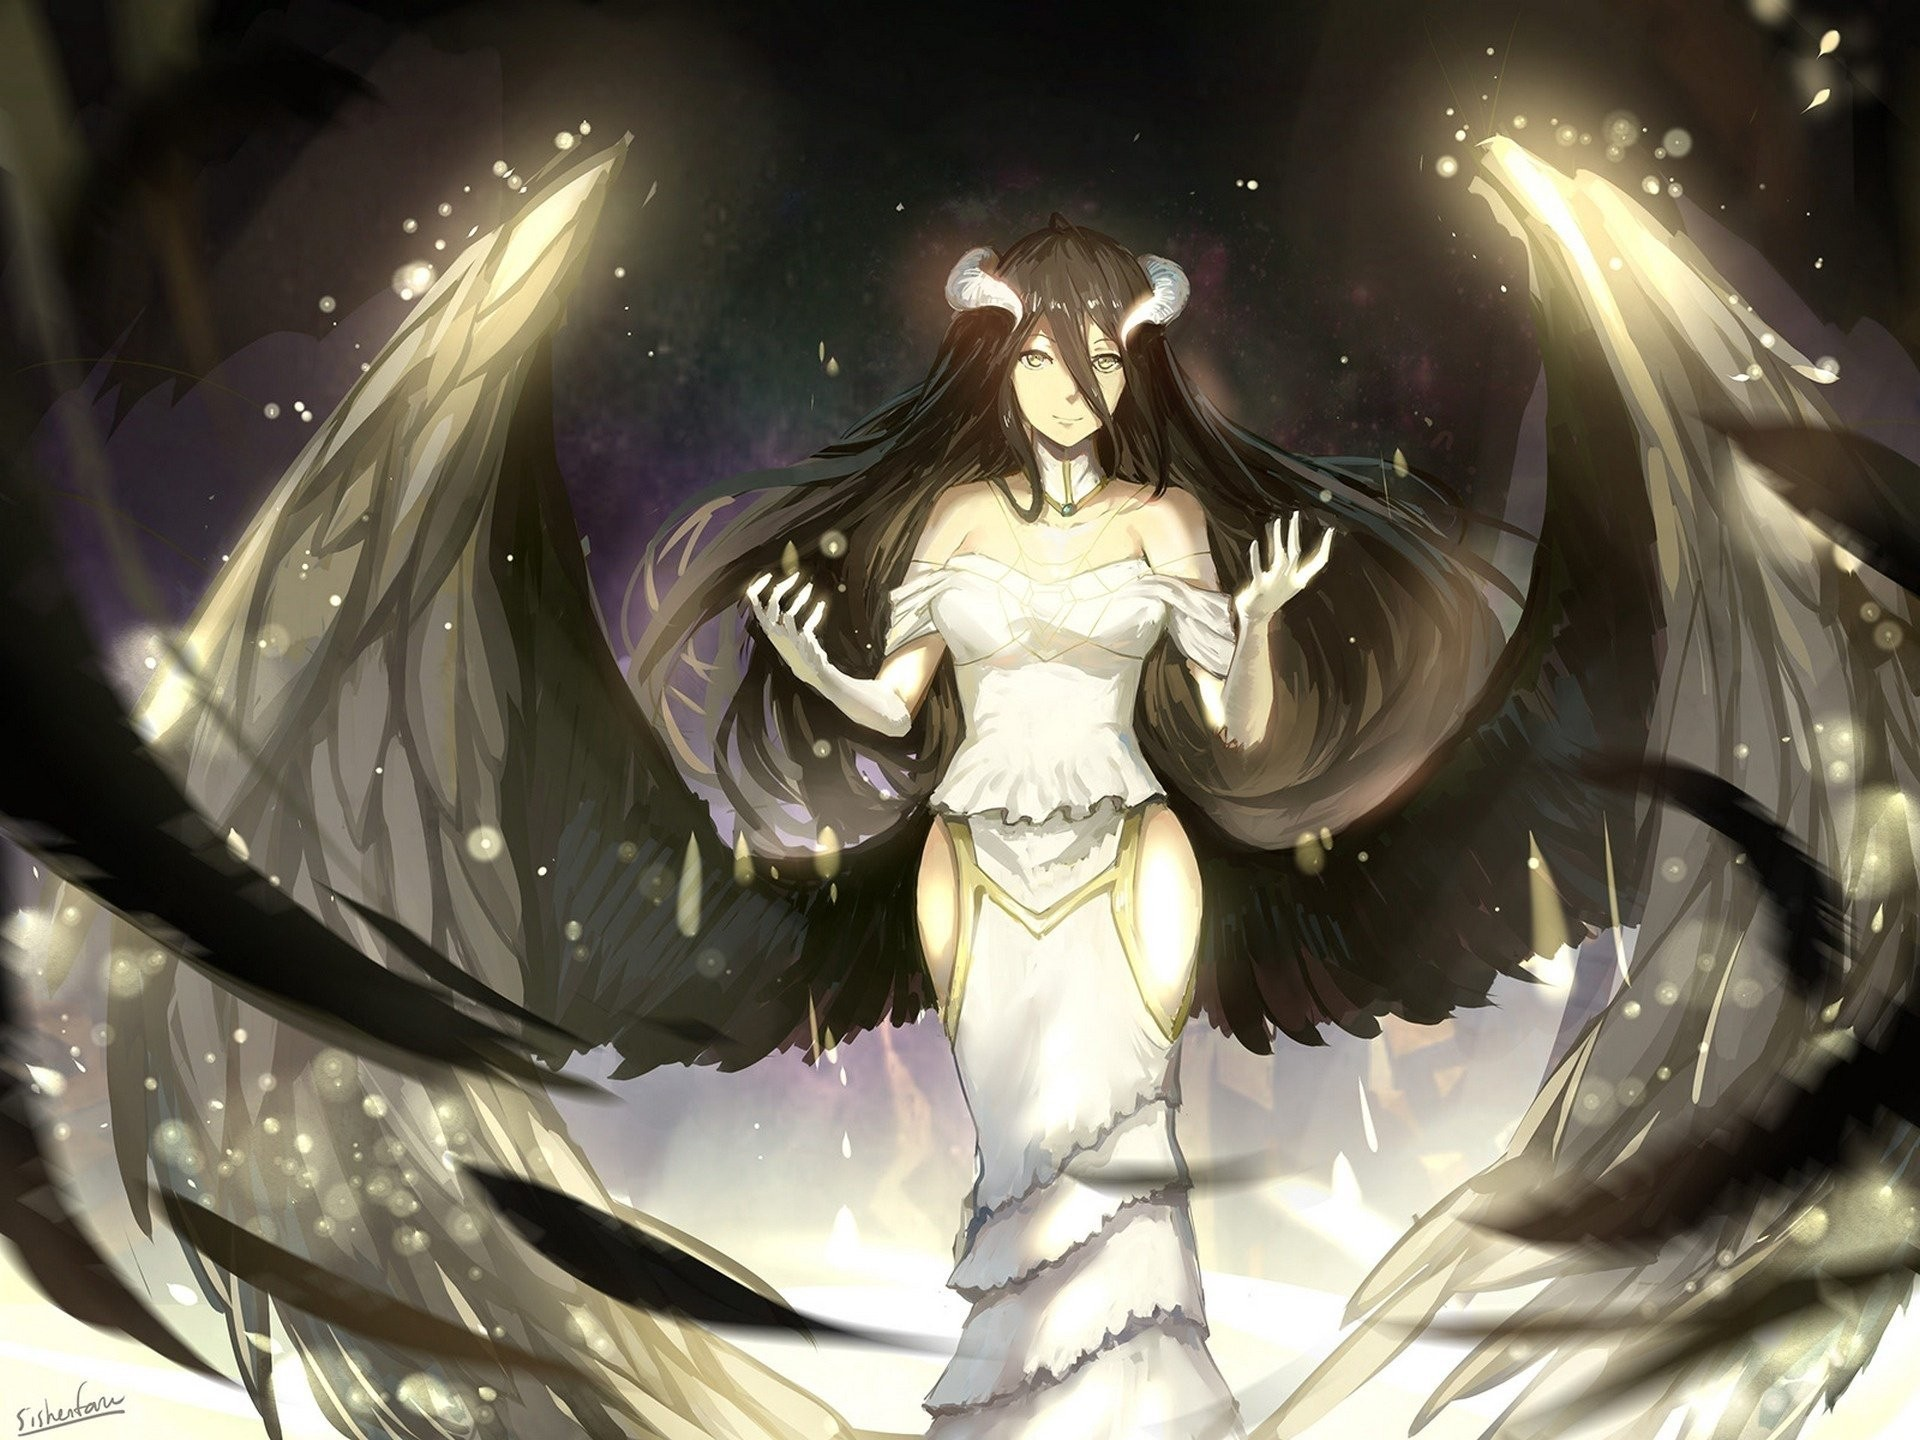 Anime Wallpaper Hd For Iphone: Overlord Anime Wallpaper ·① Download Free Stunning